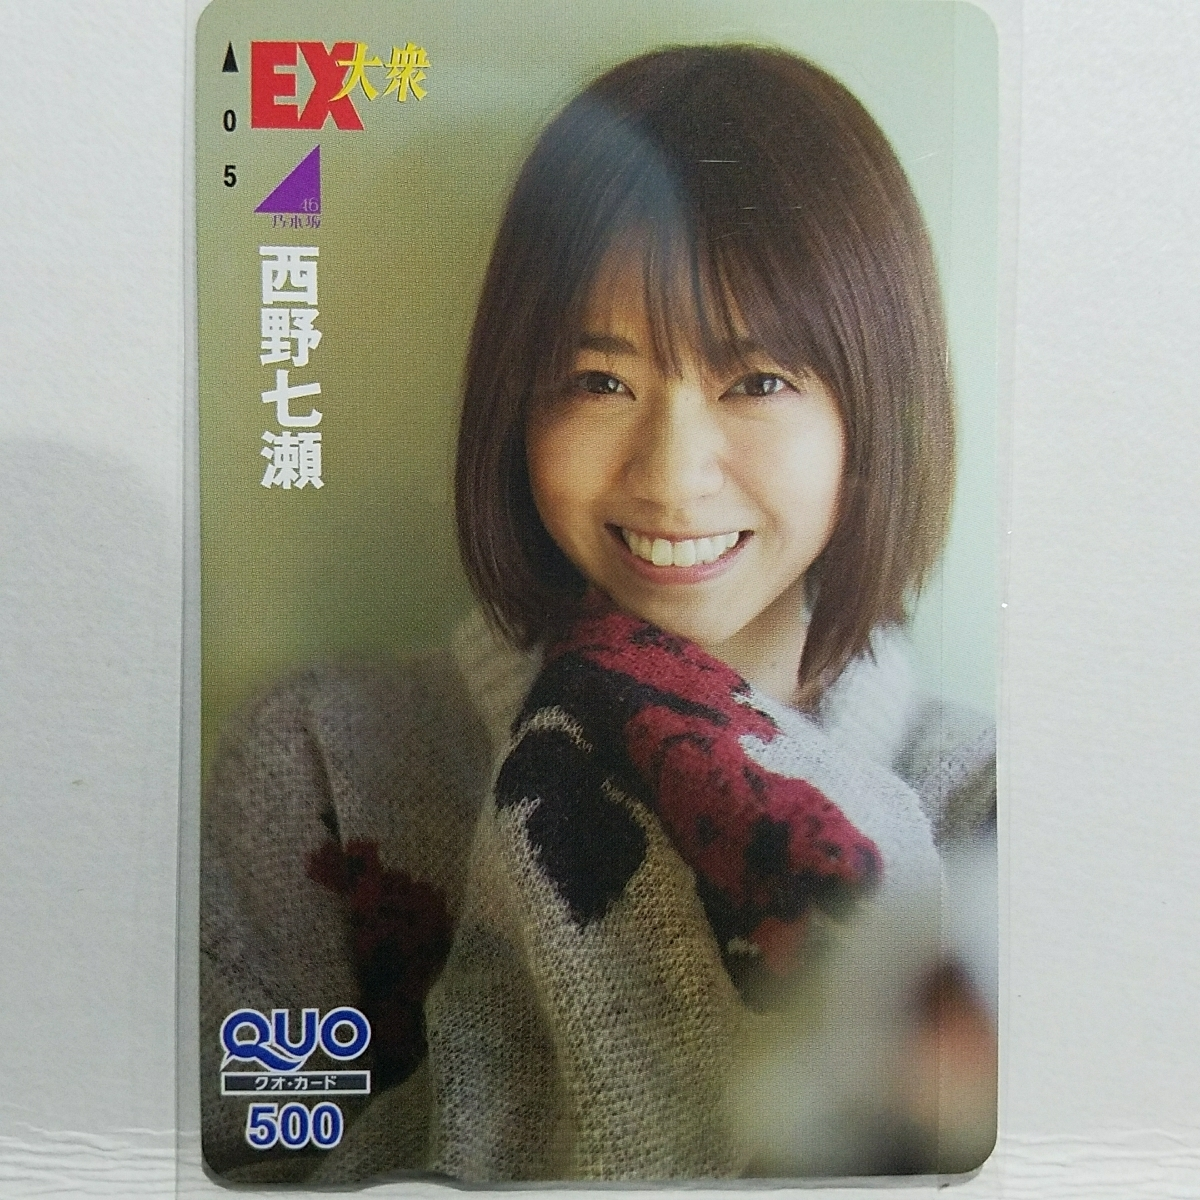 west . 7 .* QUO card * Mini letter only free shipping! Nogizaka 46*.- Chan